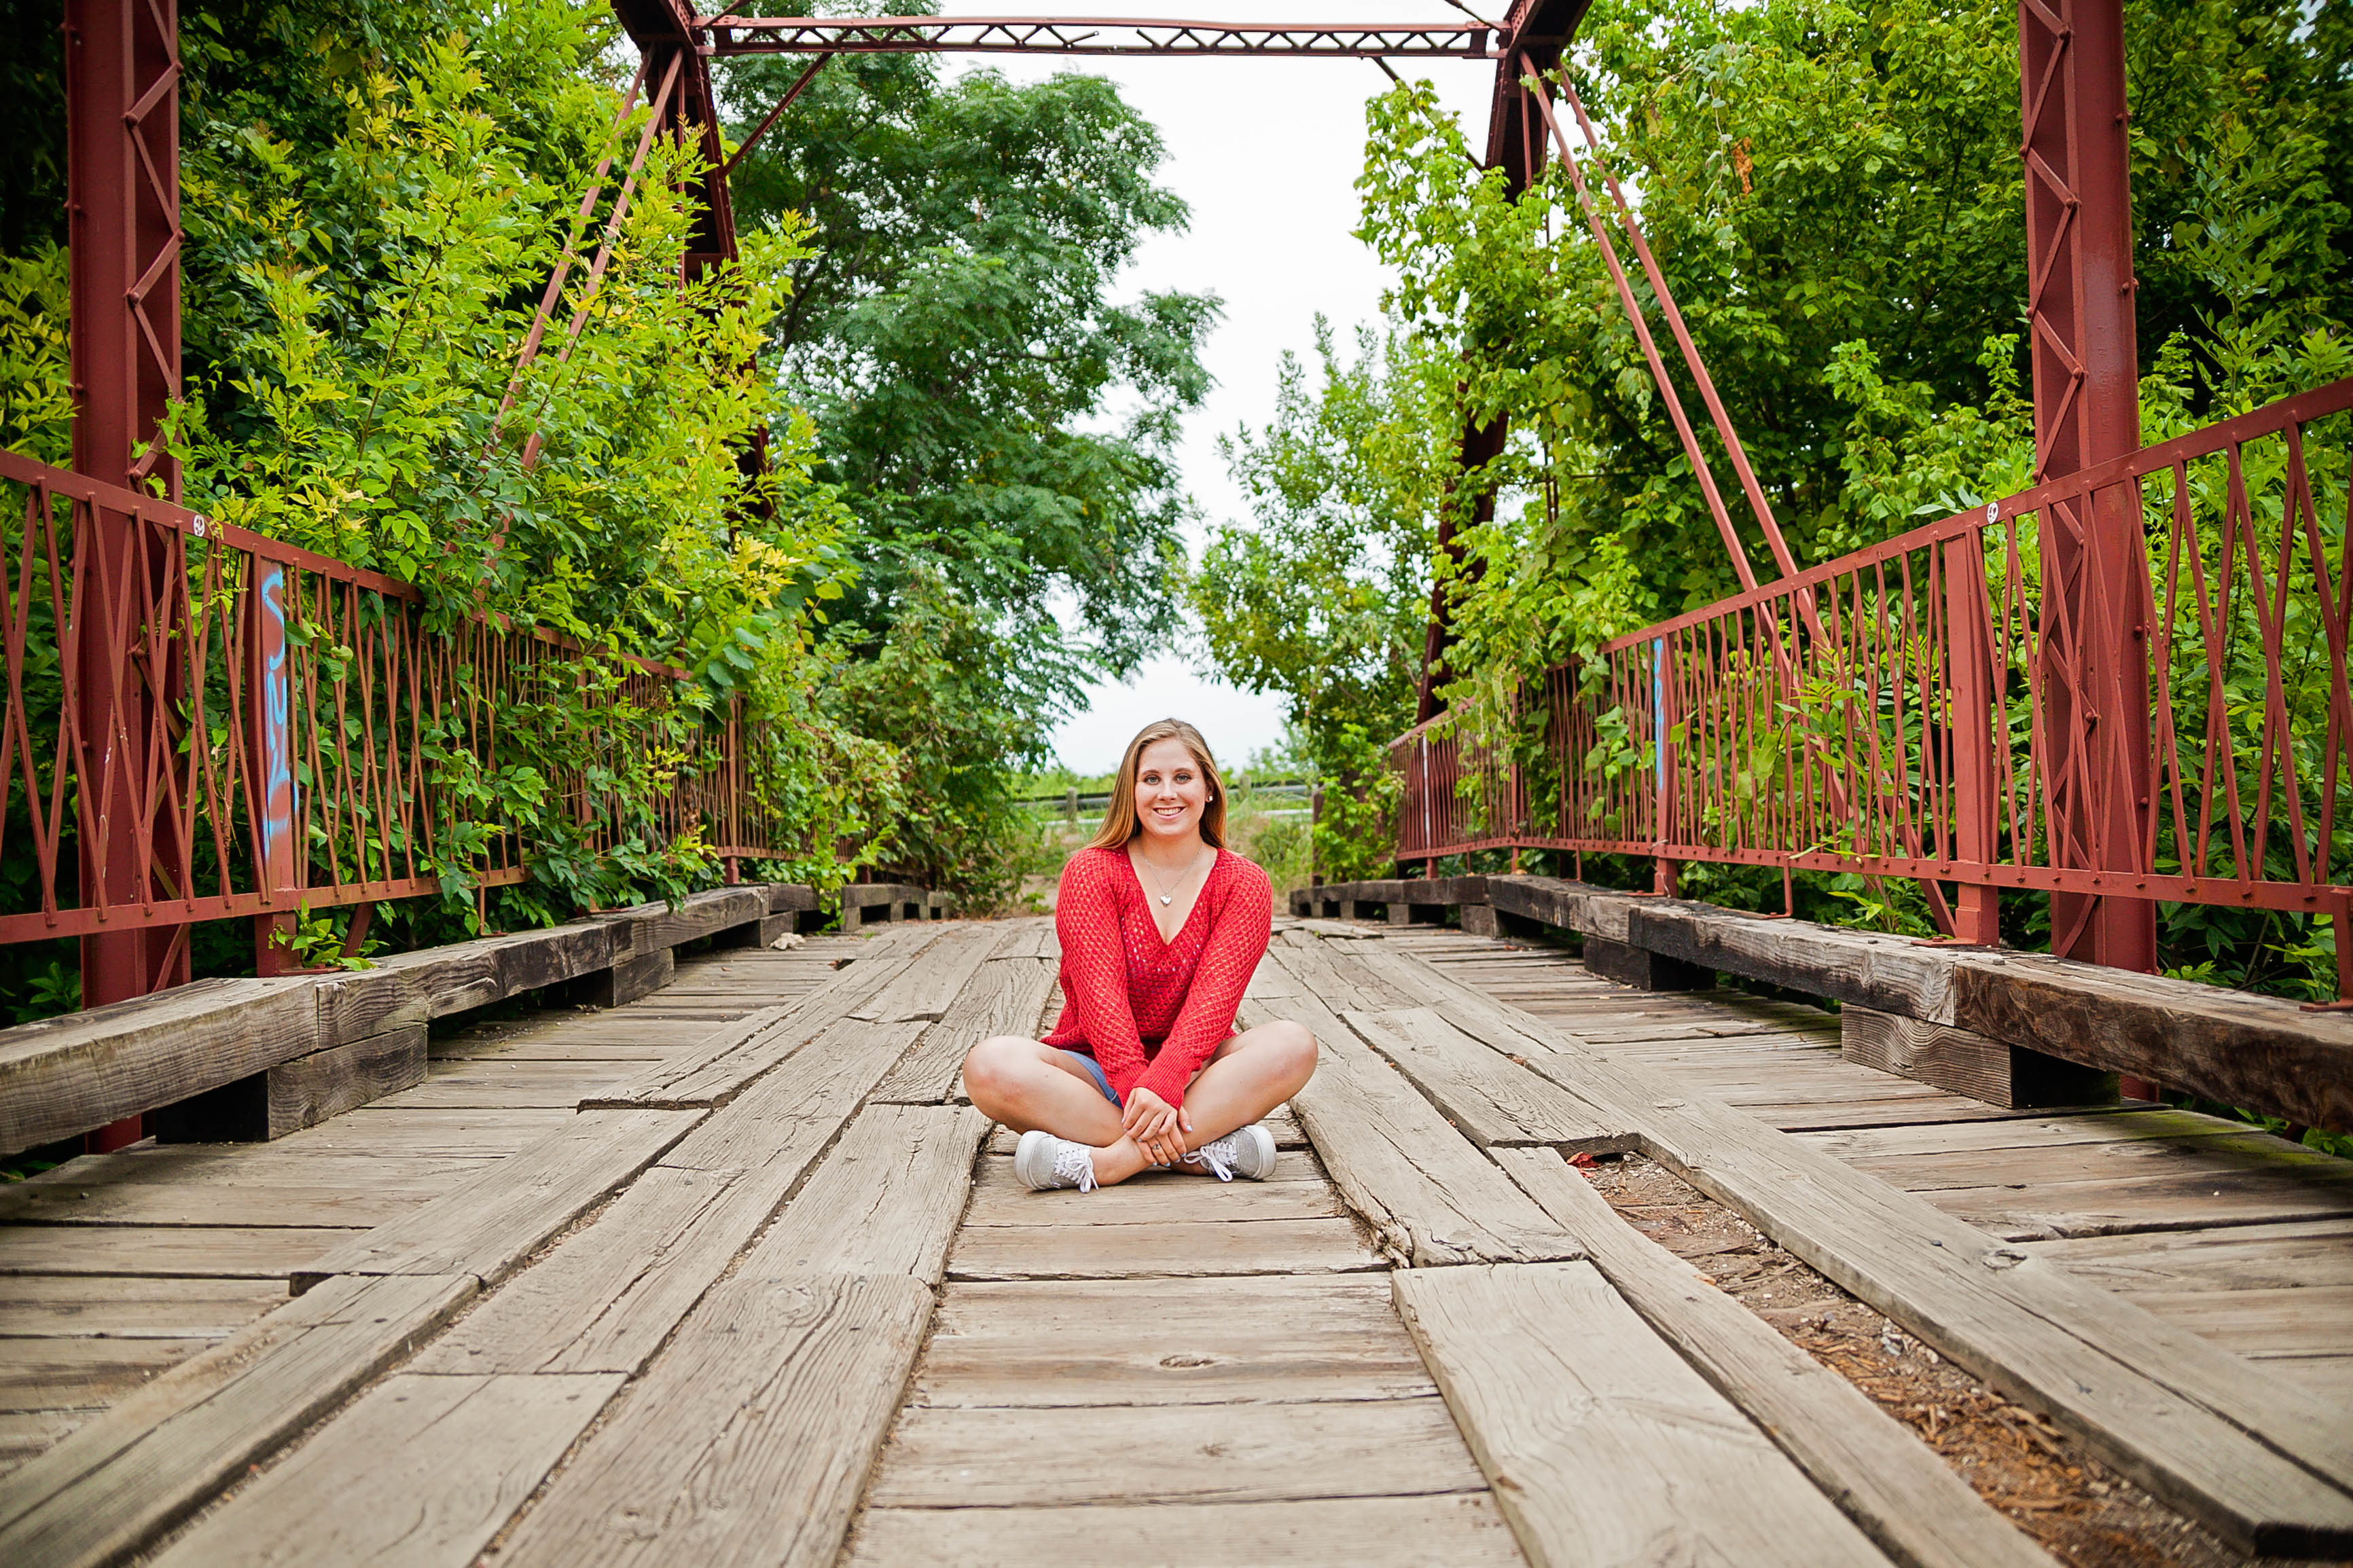 Senior portraits photographed at the Dallas Arboretum by photographer Amber Knauss of Golightly Images